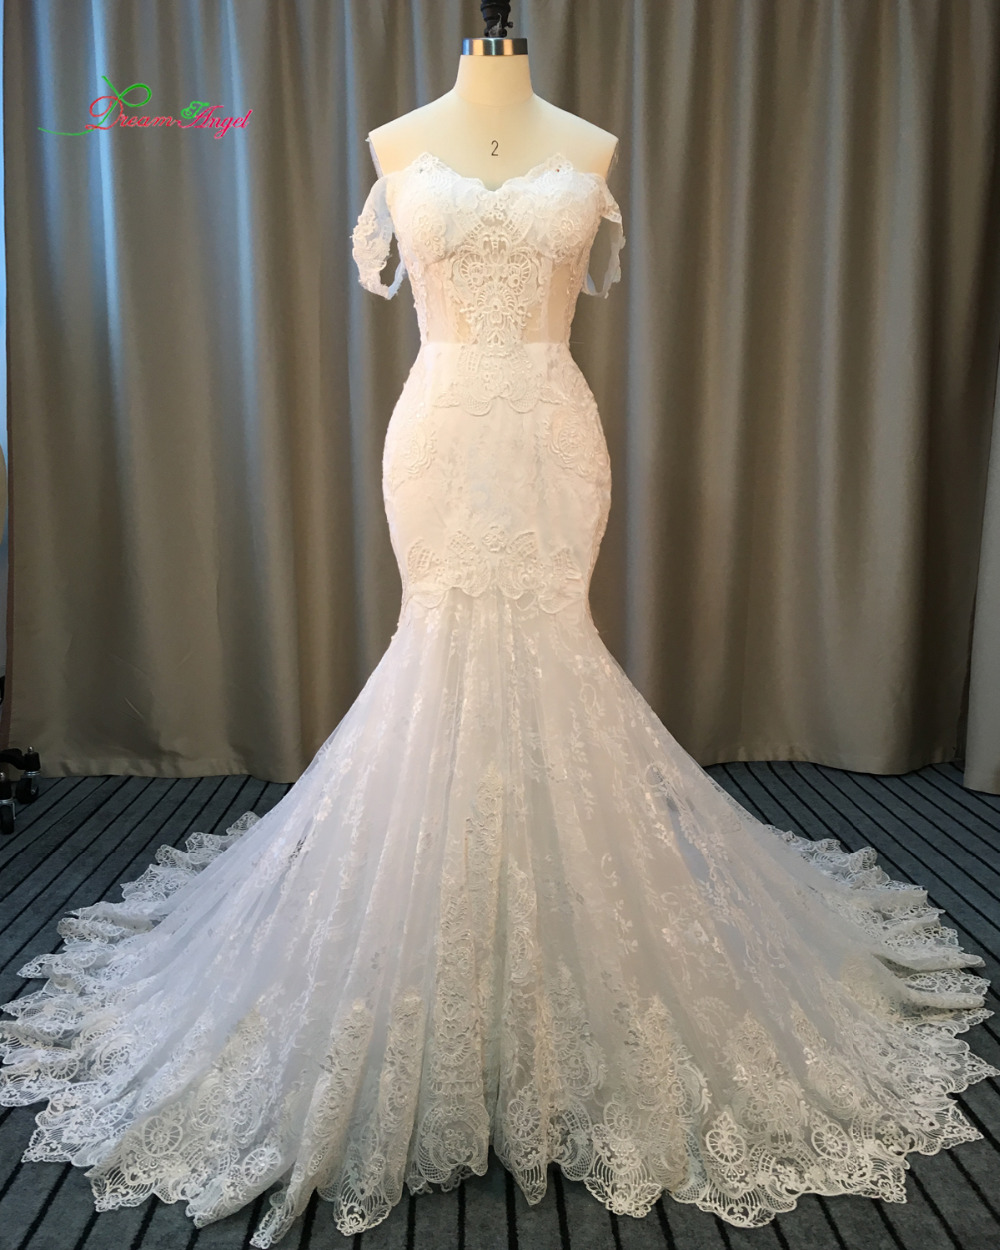 Mermaid Lace Wedding Gown: Dream Angel Elegant Strapless Appliques Lace Mermaid